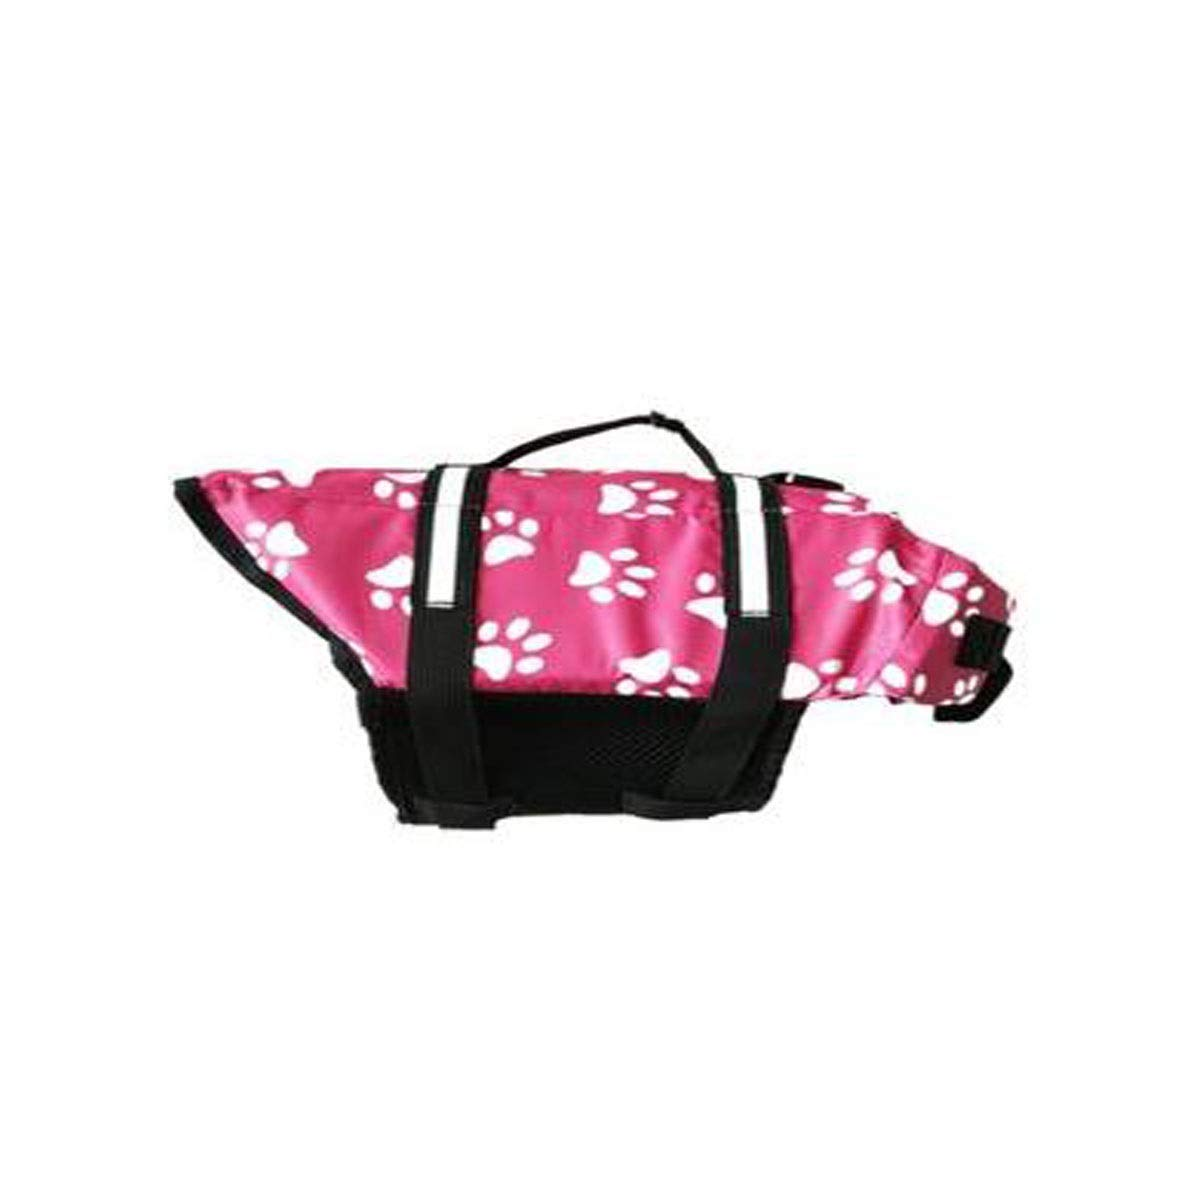 Pink A XL Youshangshipin Life Jackets, Portable Dog Swim Vest, Oxford Cloth, Such As Multicolor Options Pink (Size   L, XL, XXL) Wear Resistant